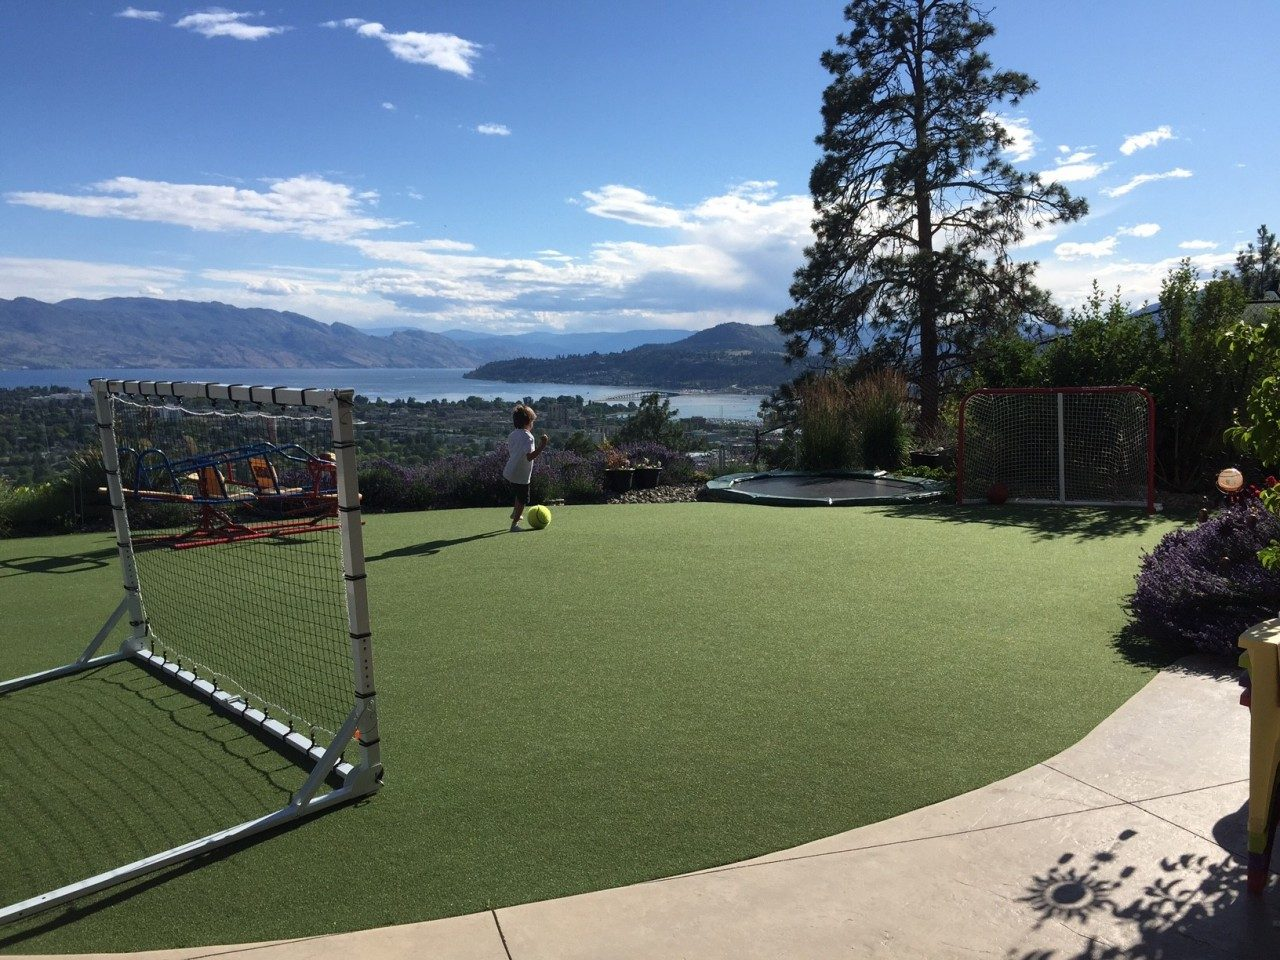 Read more on Custom Designed Artificial Grass for Multi-Sports Play Area